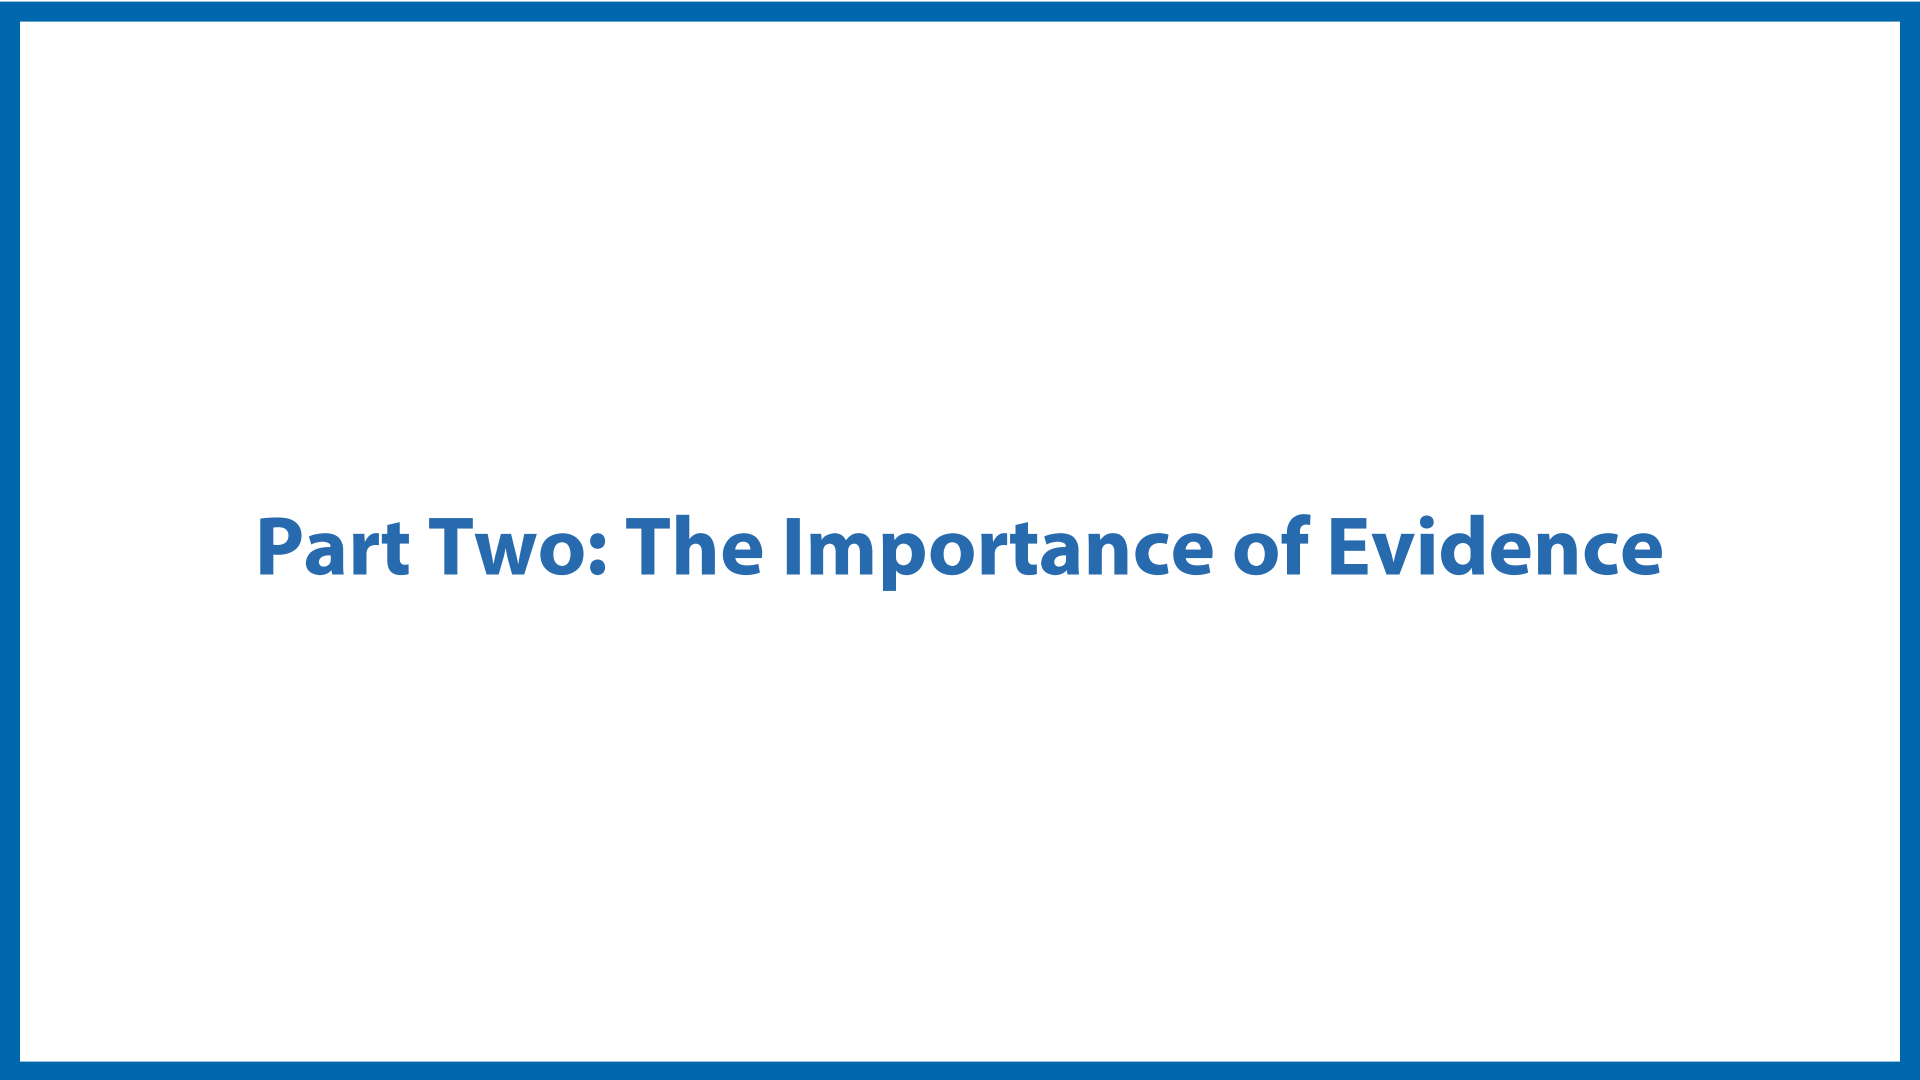 <center>Part Two:<br/>The Importance of Evidence</center>